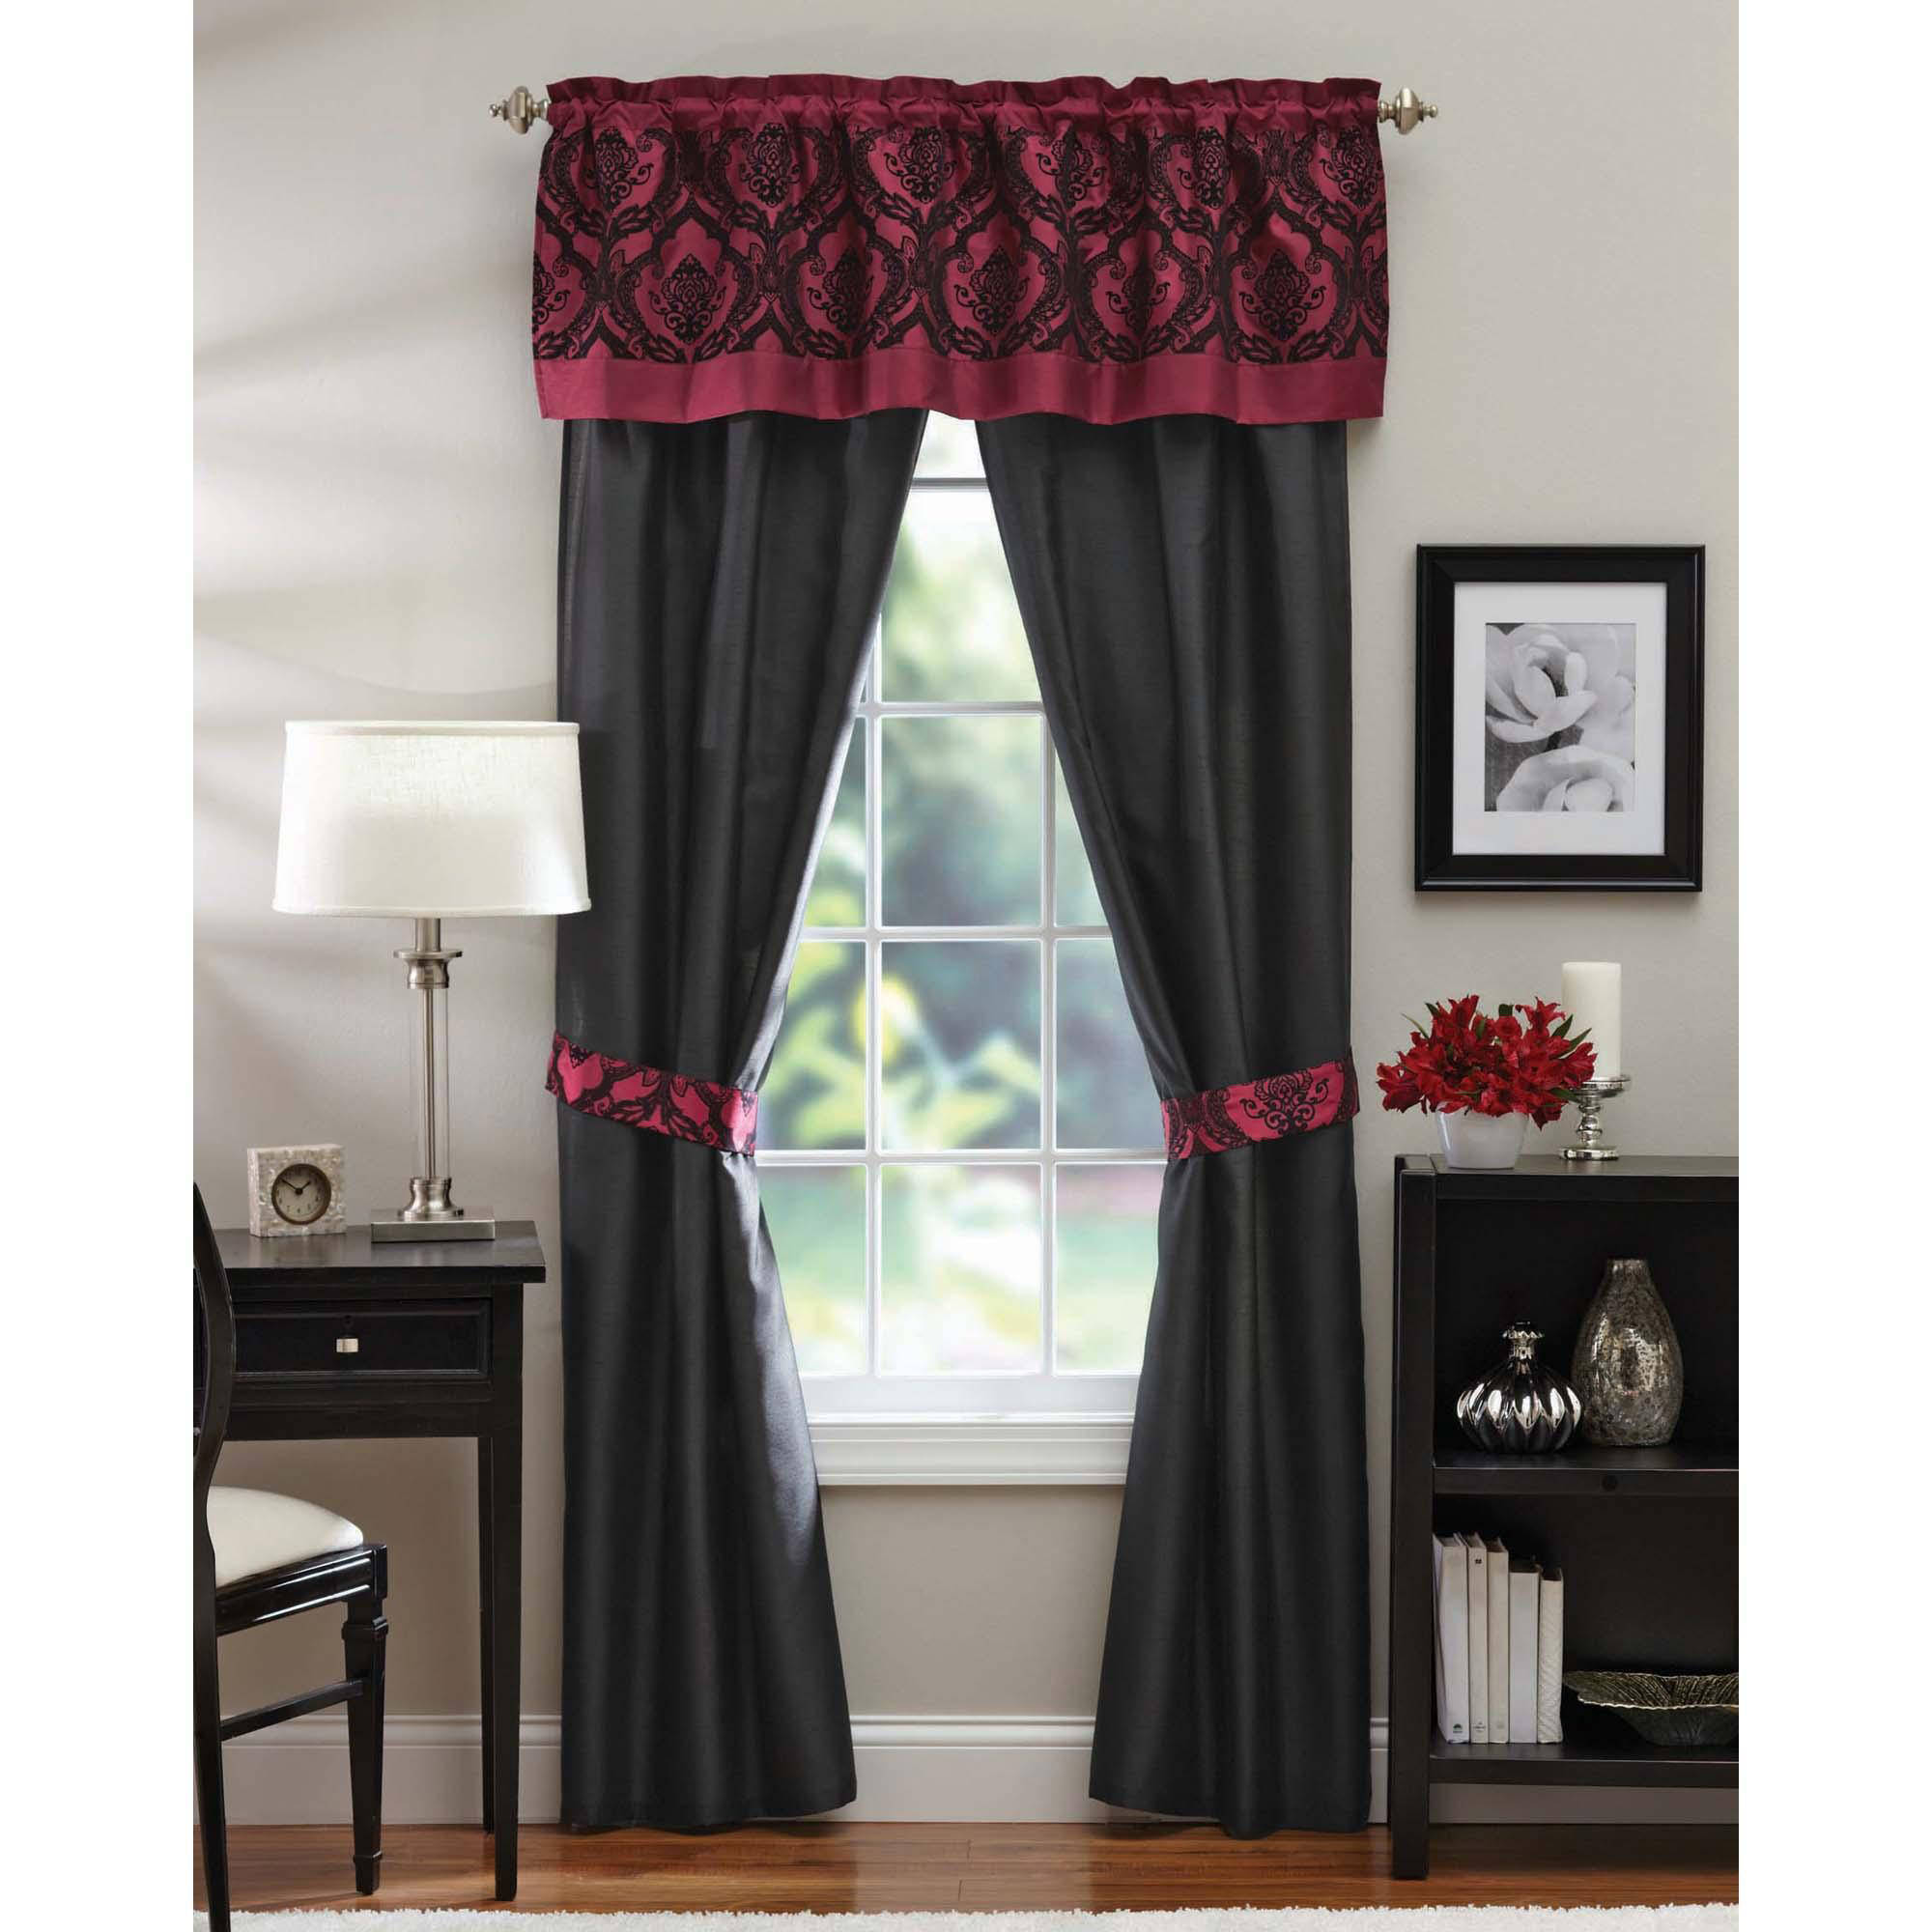 Better Homes And Gardens Sylvan Crest 5 Piece Curtain Panel Set    Walmart.com Part 64